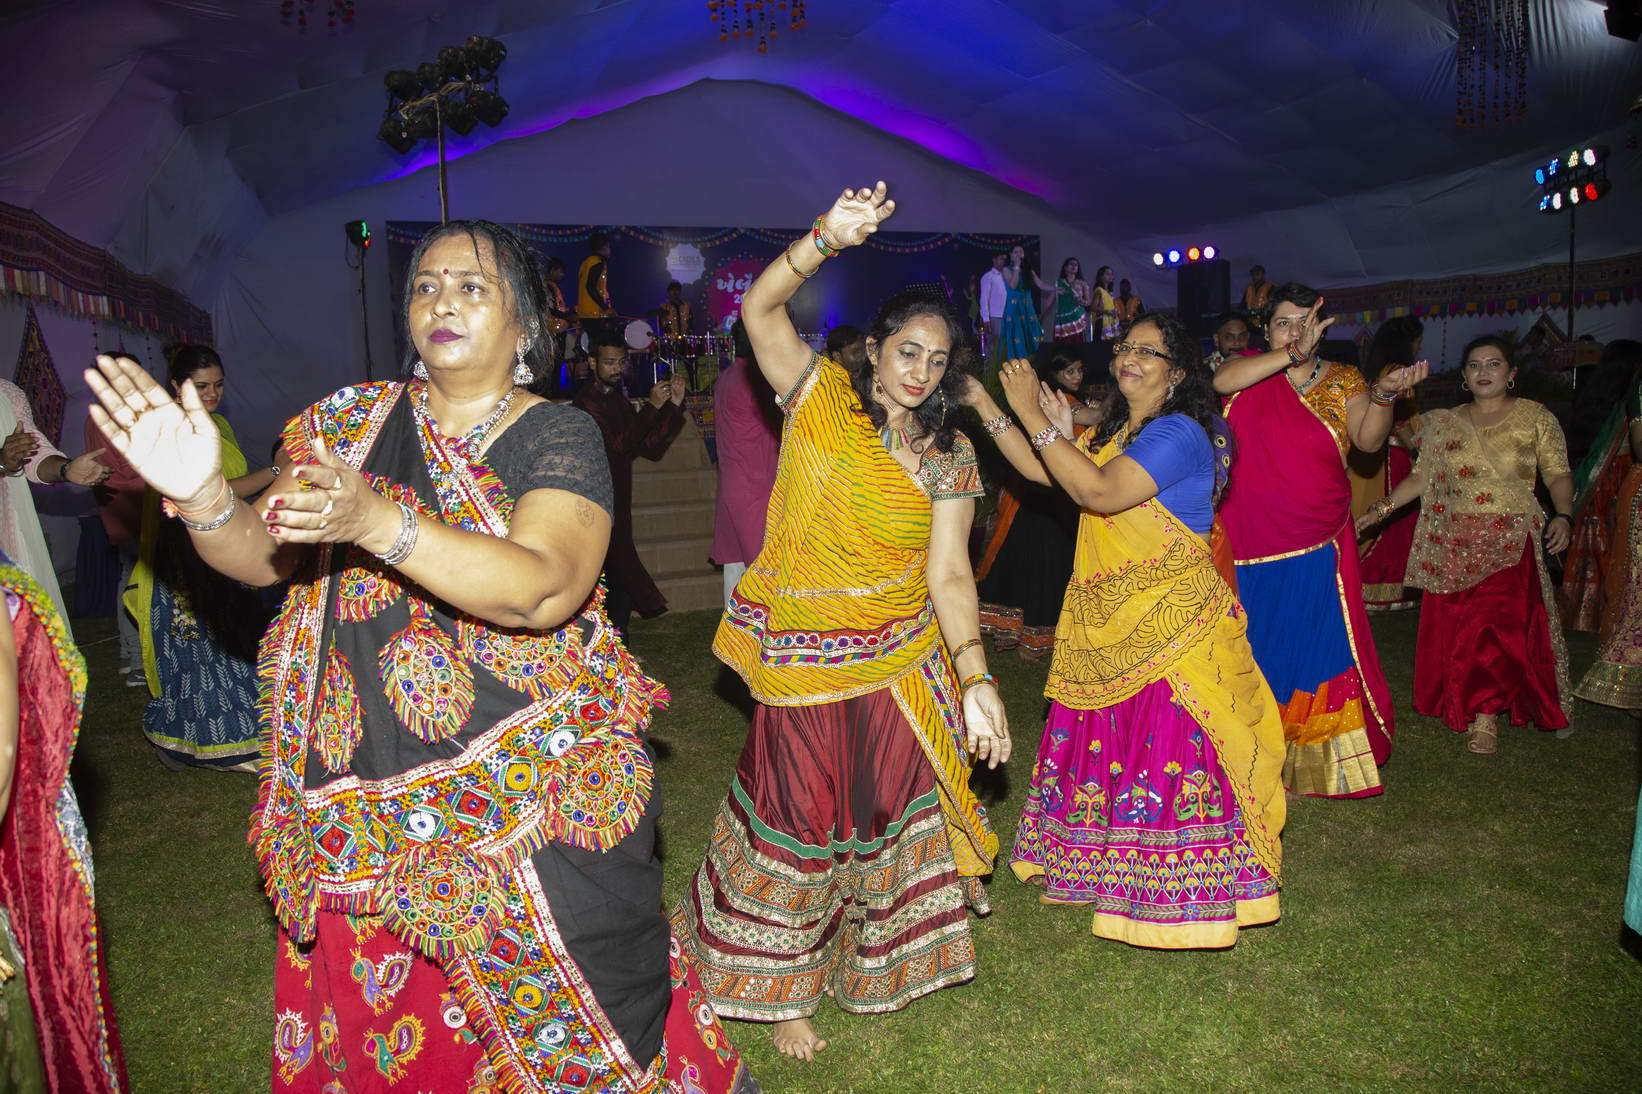 Navratri celebration with messages of social goodness